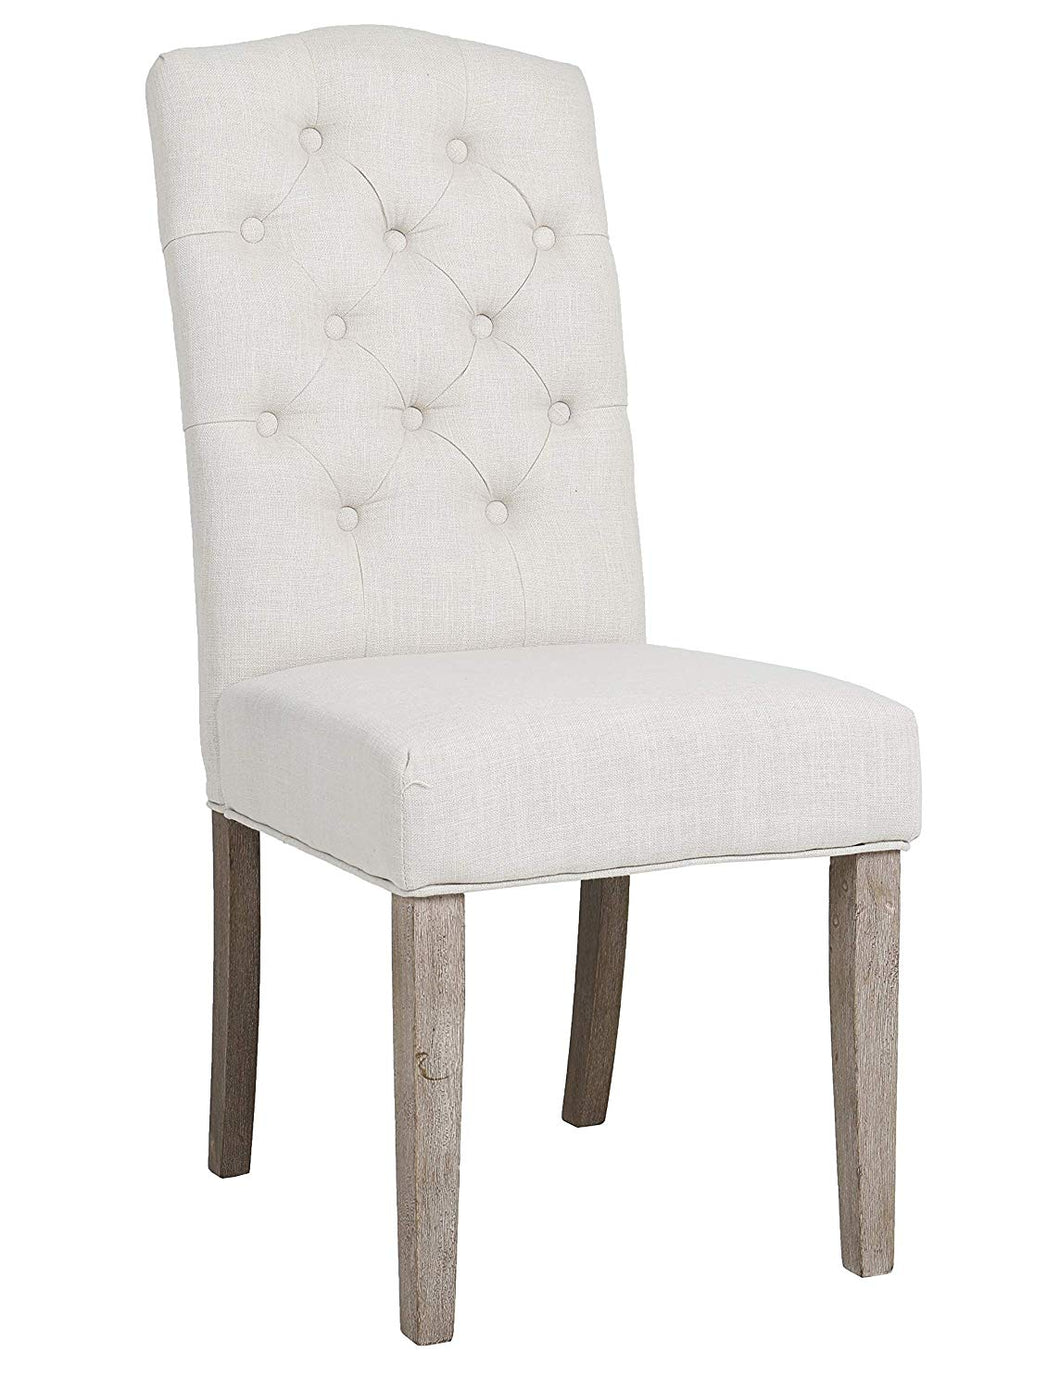 BTexpert French High Back Tufted Upholstered Dining Chair, Set of 2